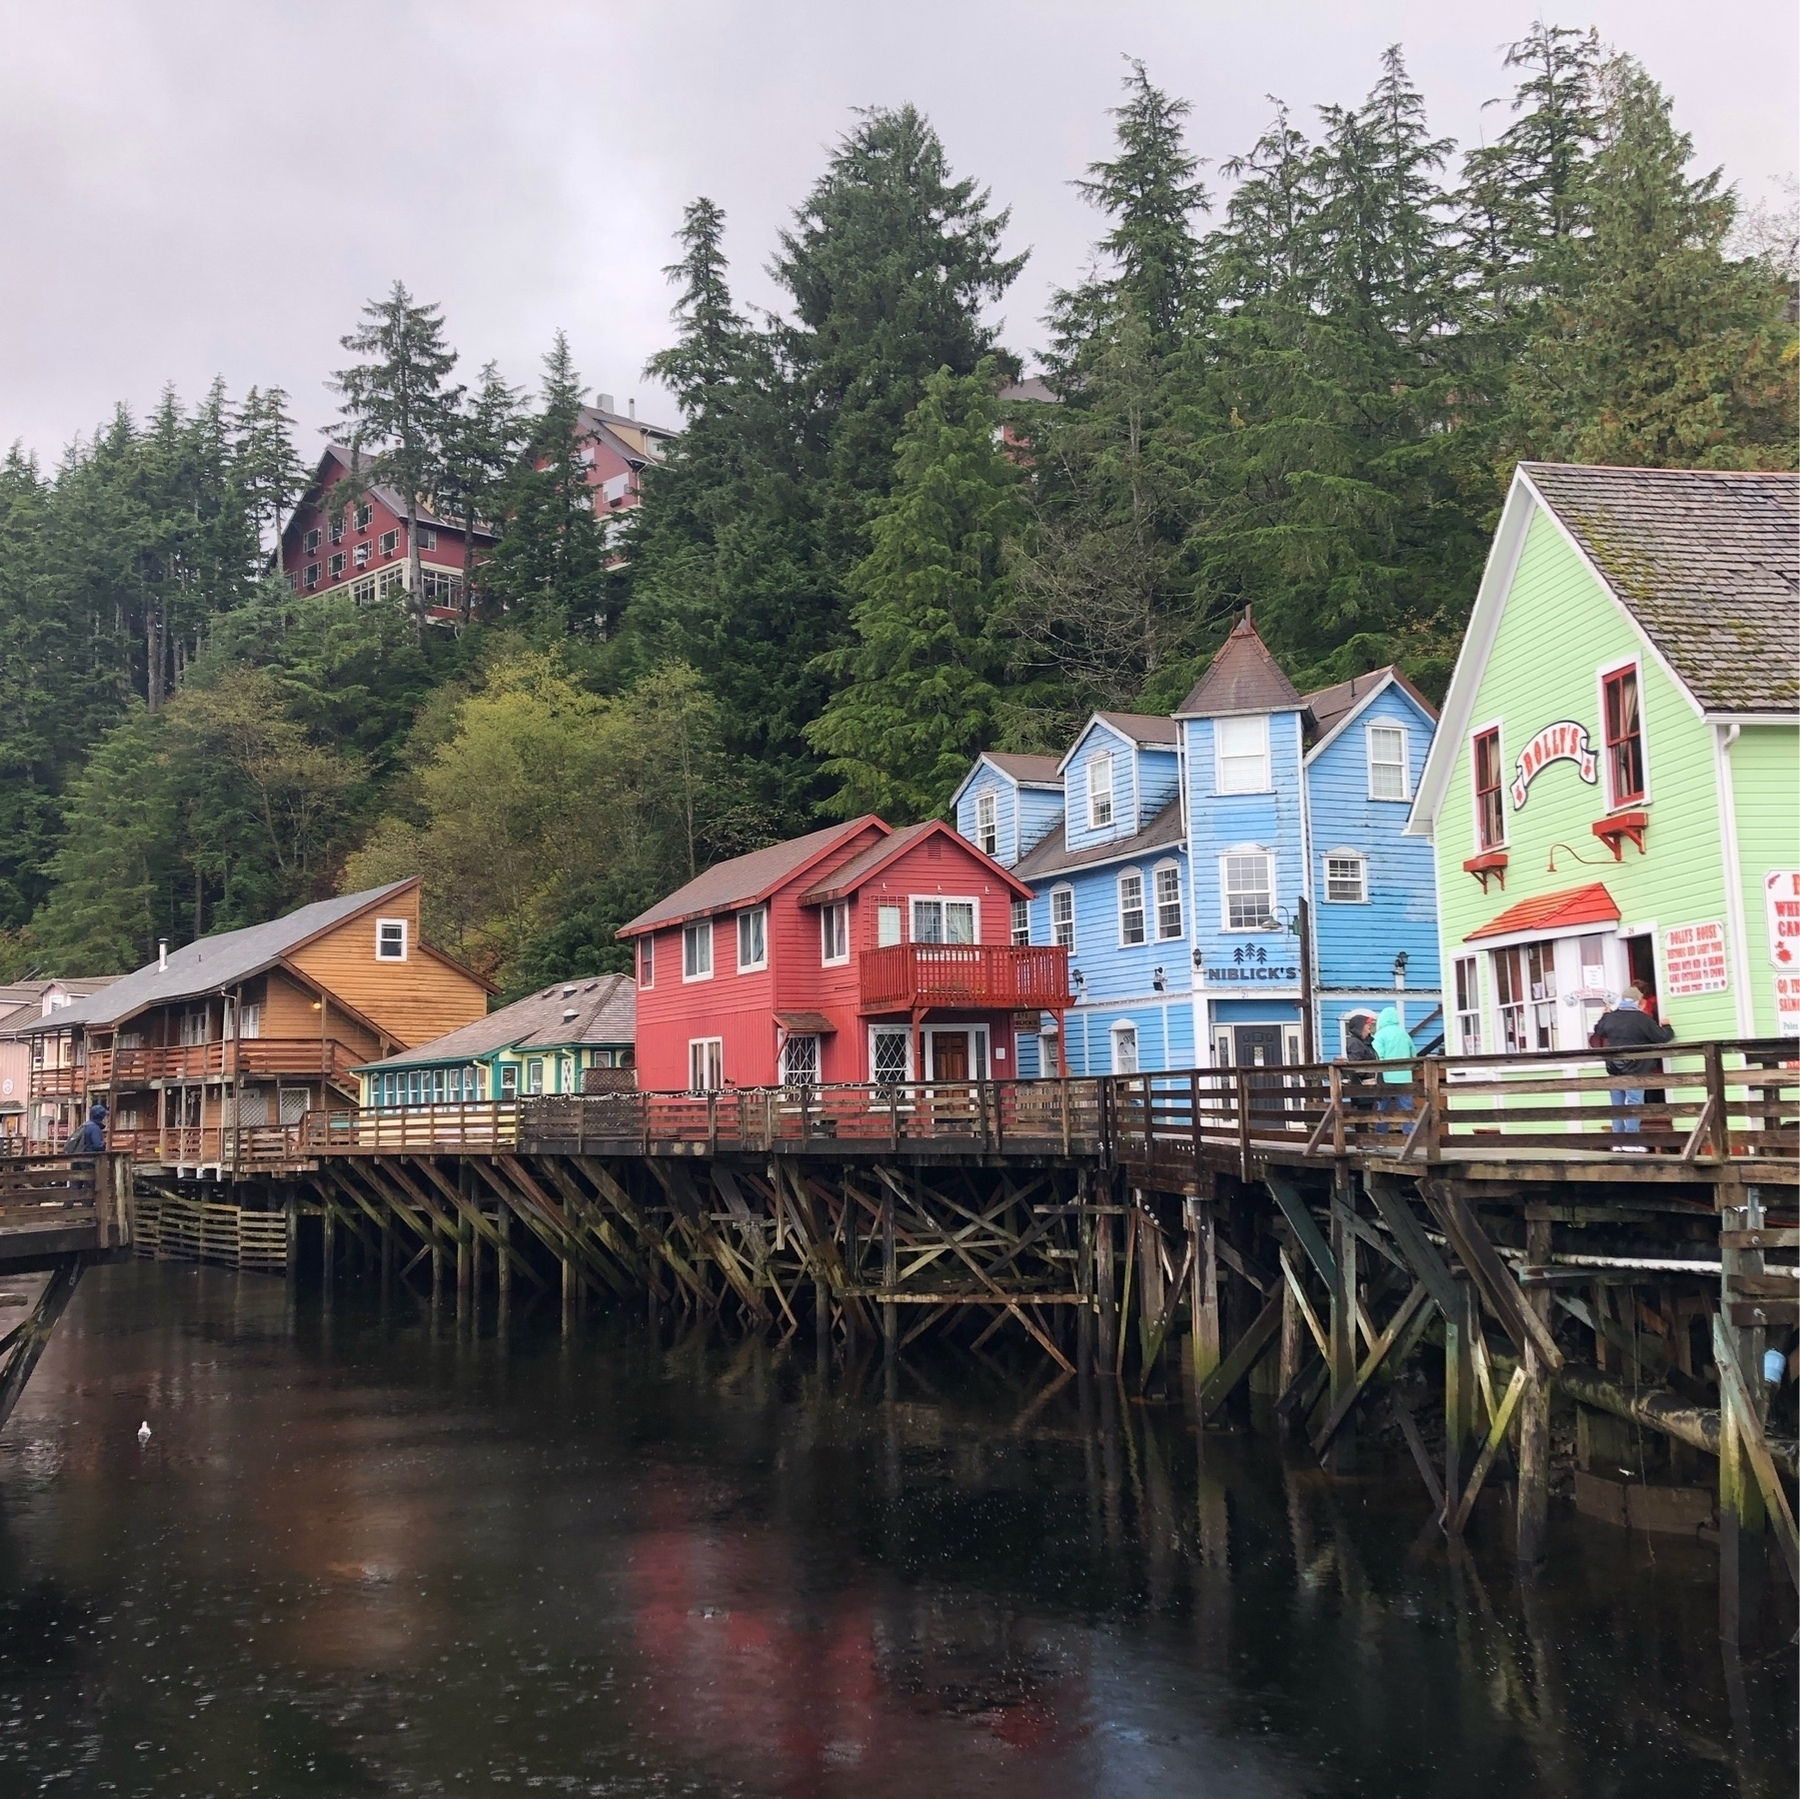 A row of wooden houses perch over a river atop stilts. The houses are brown, yellow, red, green, and blue, creating a colorful rainbow. They're old-timey structures, containing shops in pictureque Ketichikan Alaska.